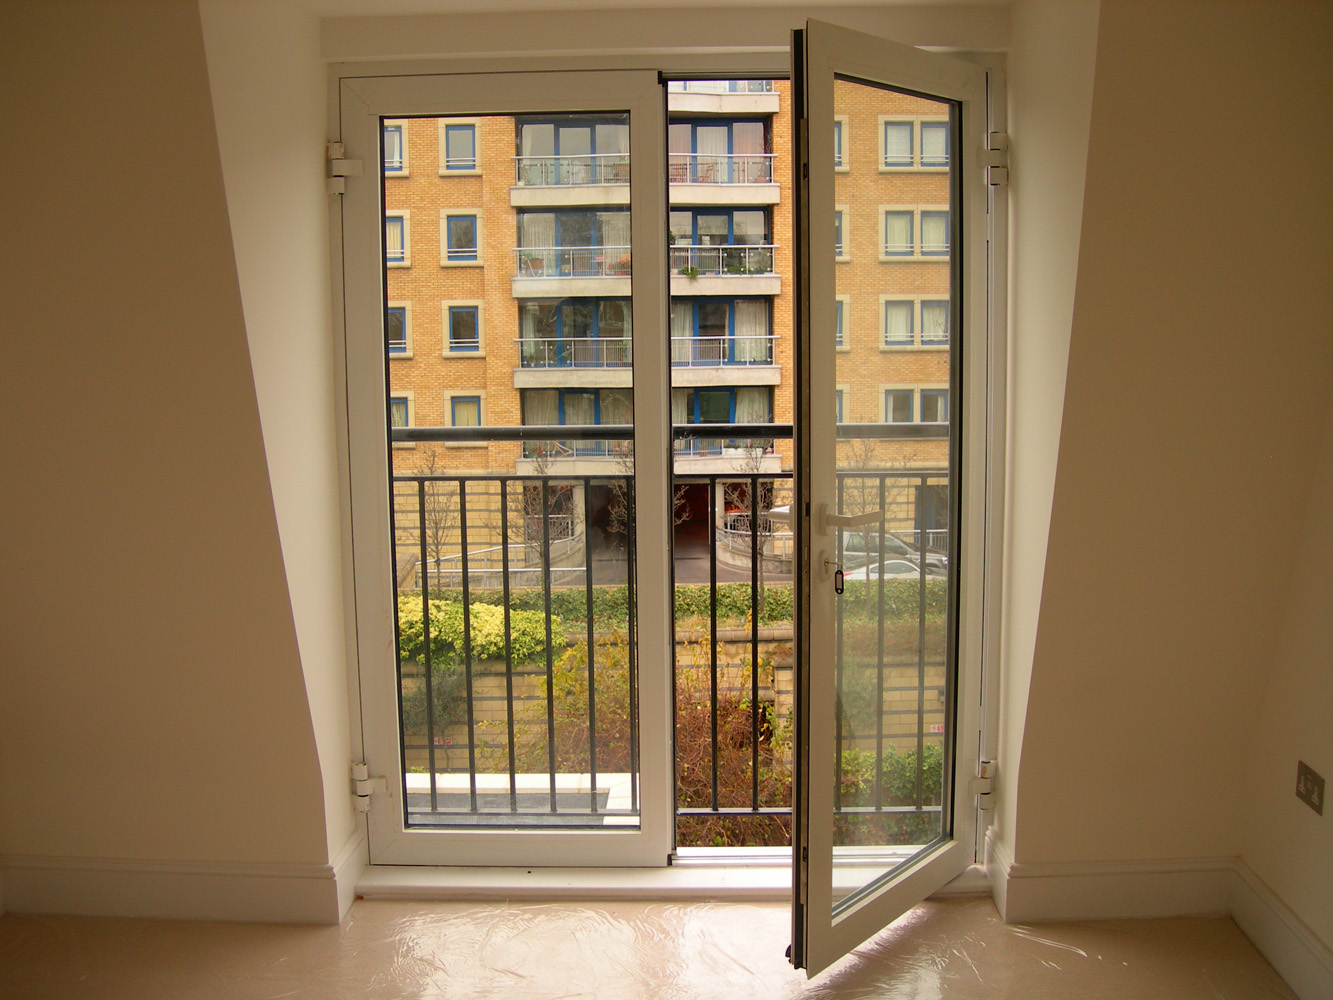 Soundproof interior double doors can be fully opened for ventilation